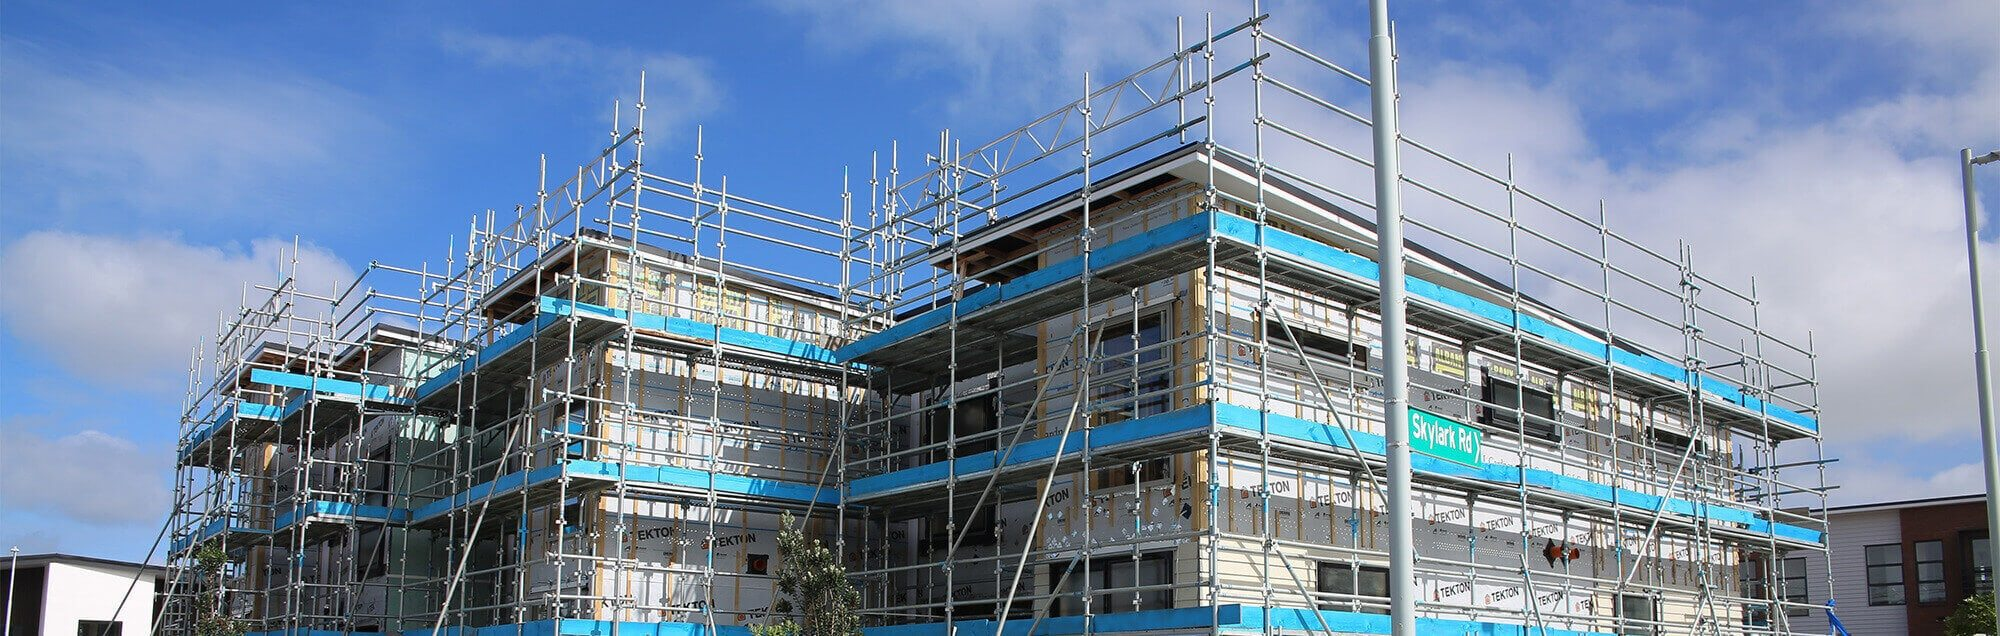 banner01 Collins Scaffolding Supplier Auckland